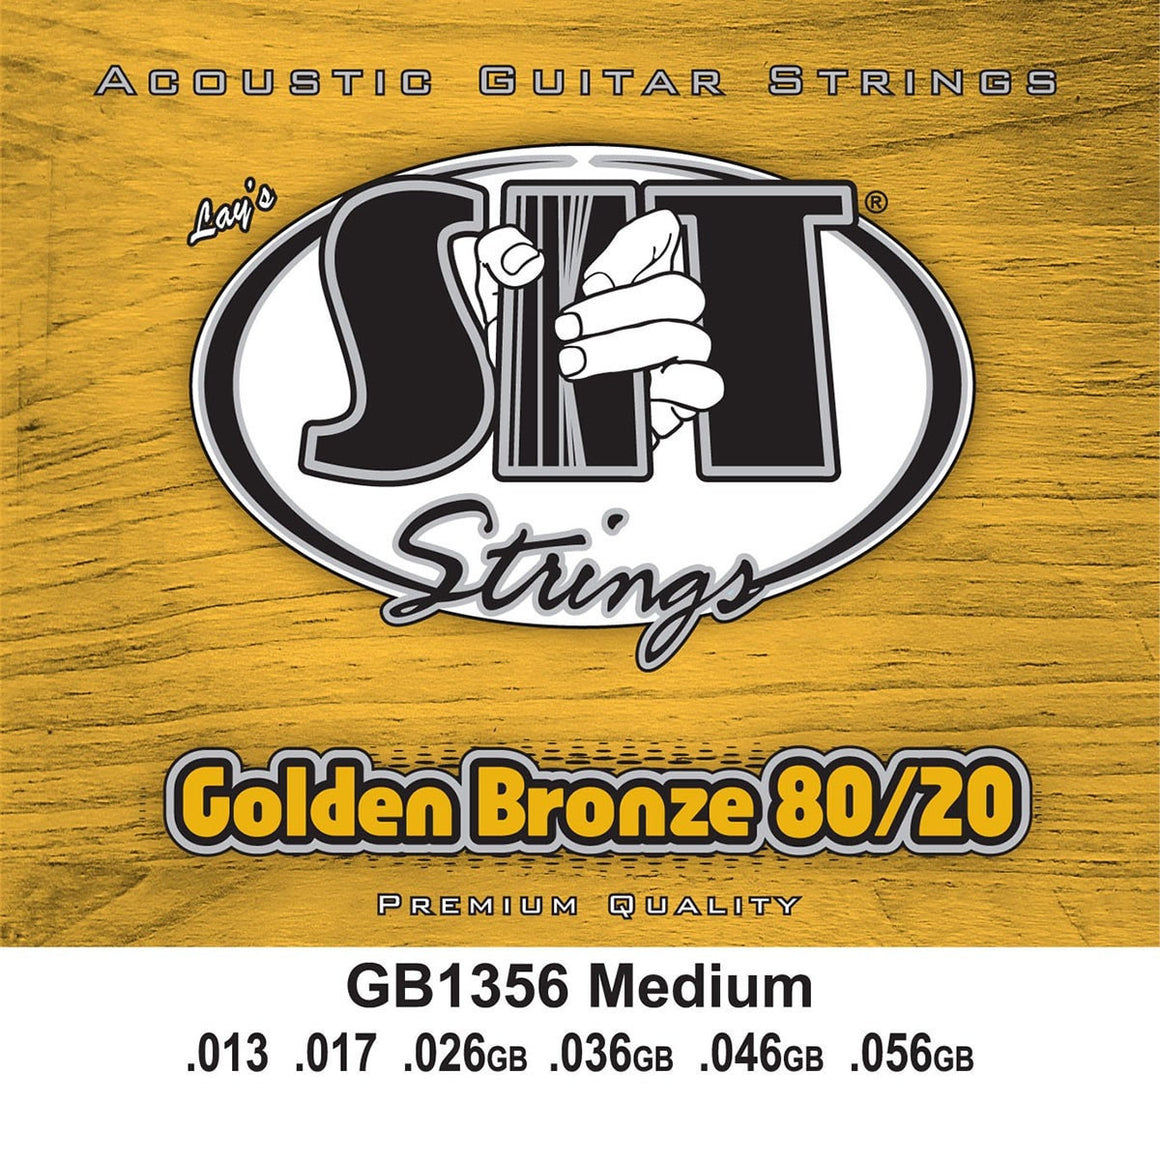 SIT Strings Acoustic Guitar Strings SIT Golden Bronze Medium GB1356 Acoustic Guitar Strings